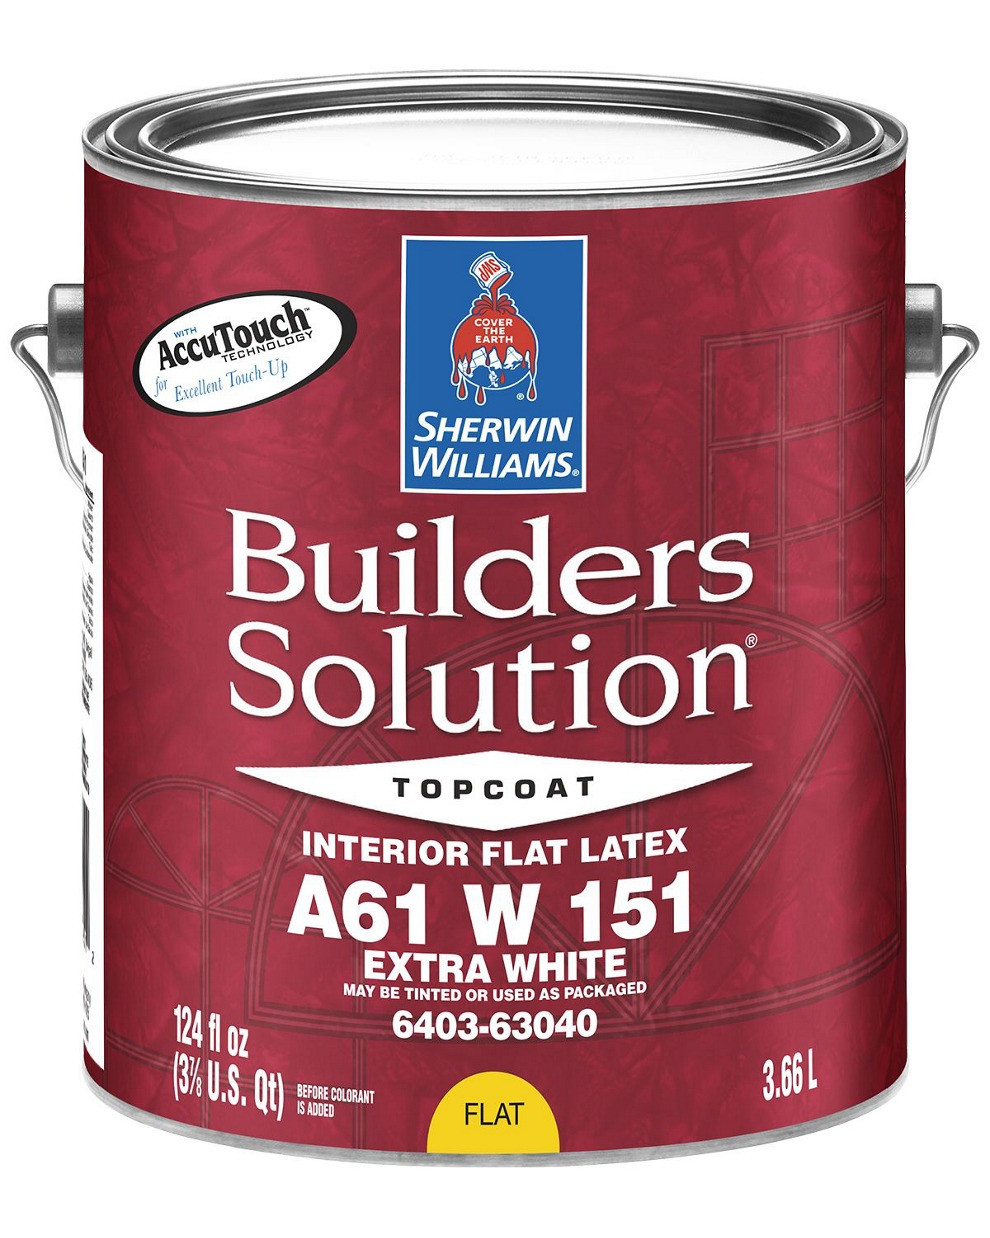 КРАСКА BUILDERS SOLUTION FLAT (Глубокоматовая) Extra White Sherwin Williams, (3,78 л)